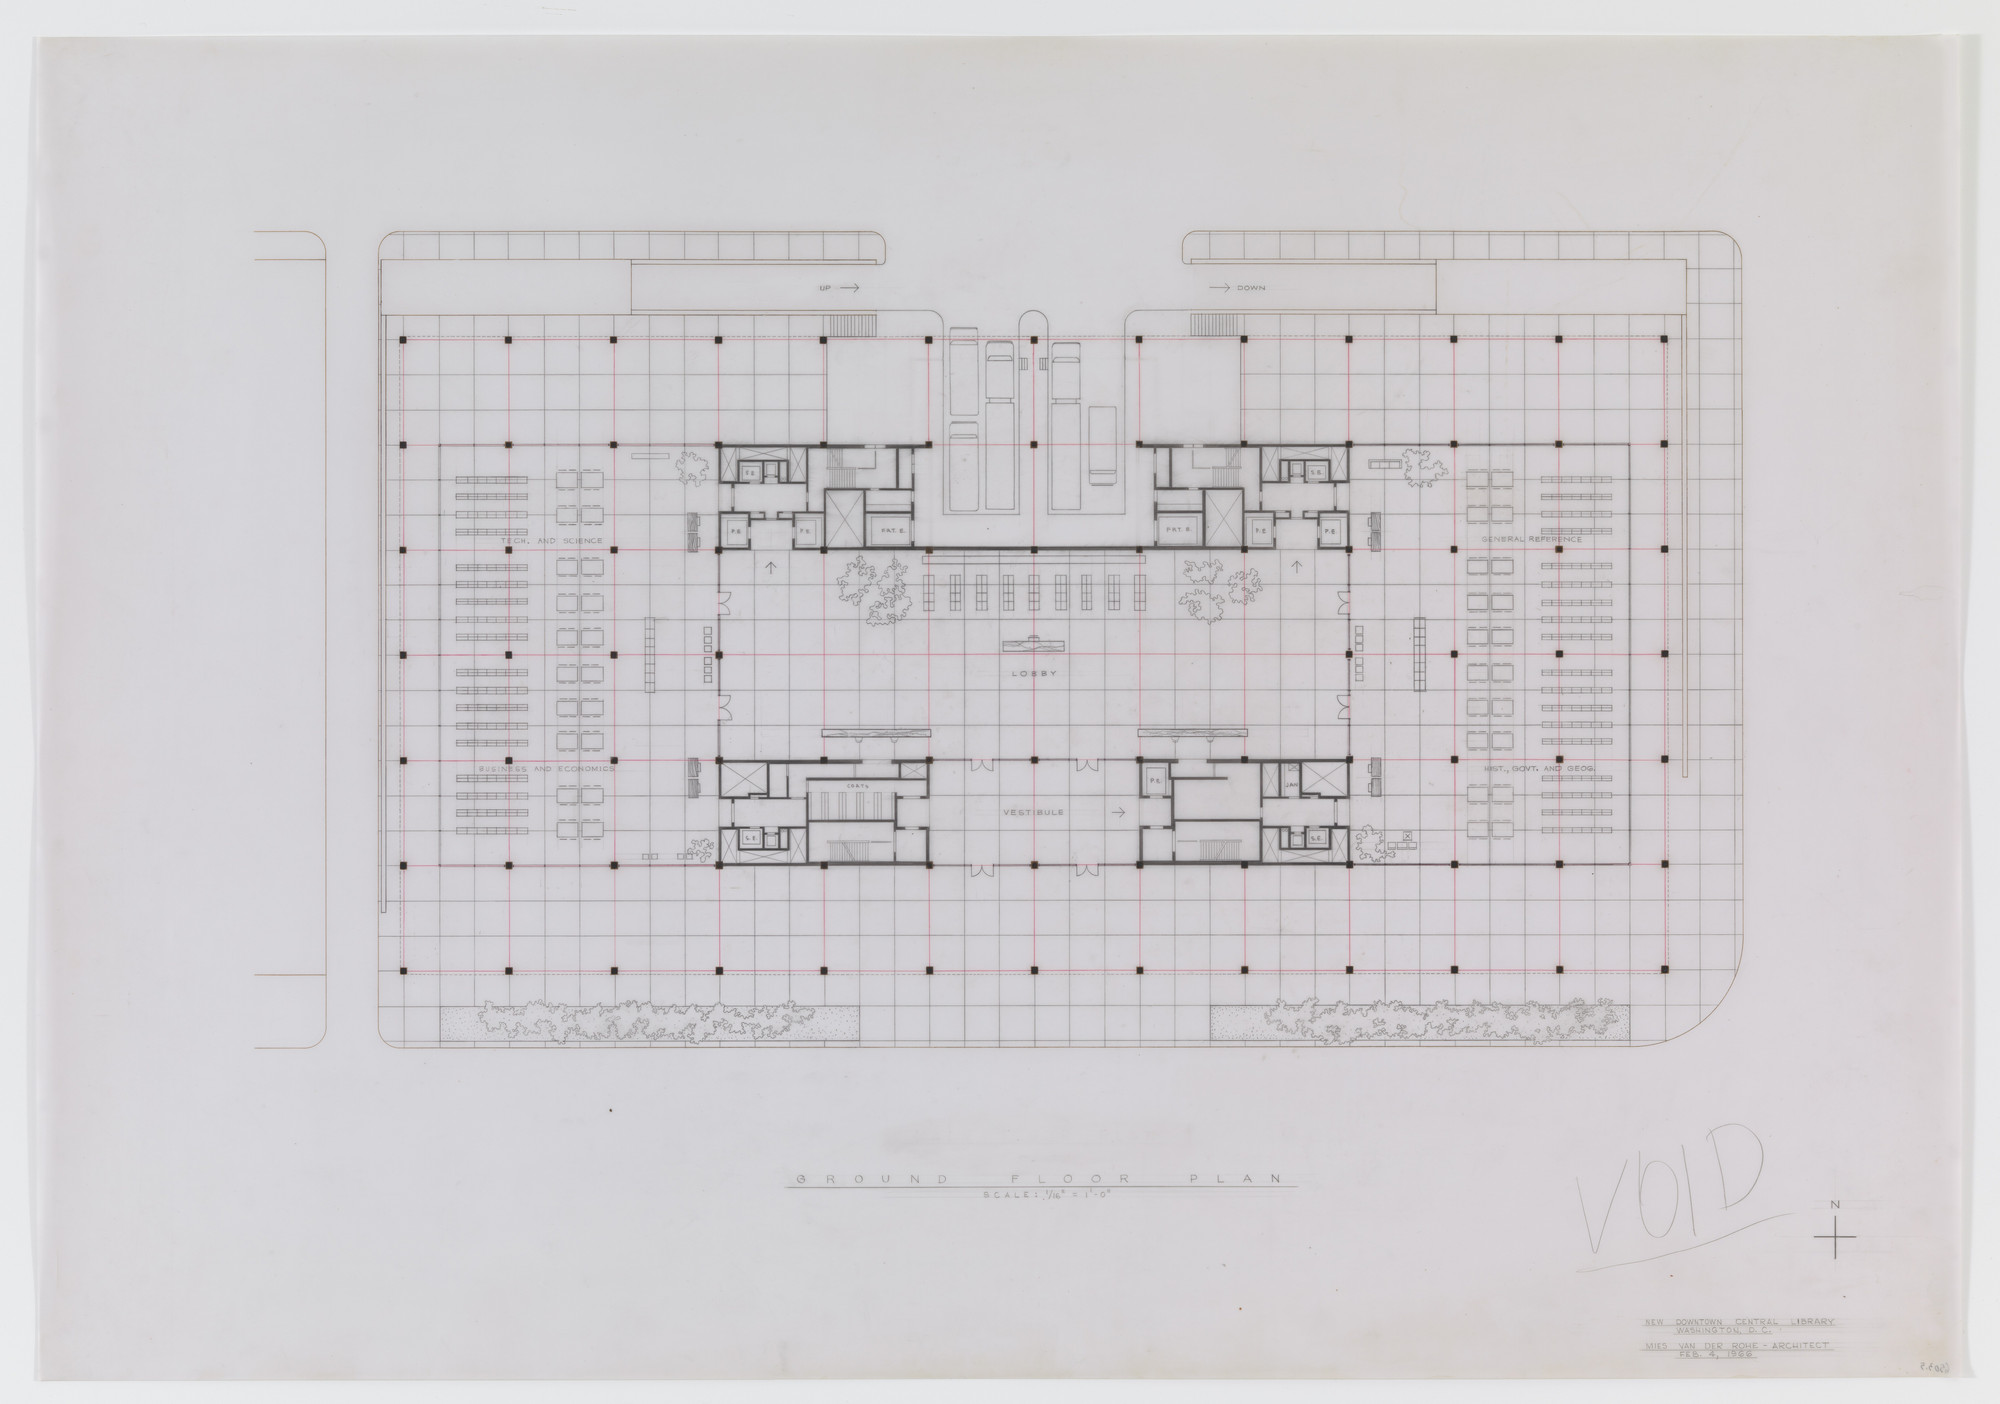 Ludwig Mies van der Rohe. Martin Luther King Jr. Memorial Library, Washington, D.C., First floor plan. 1965-1968